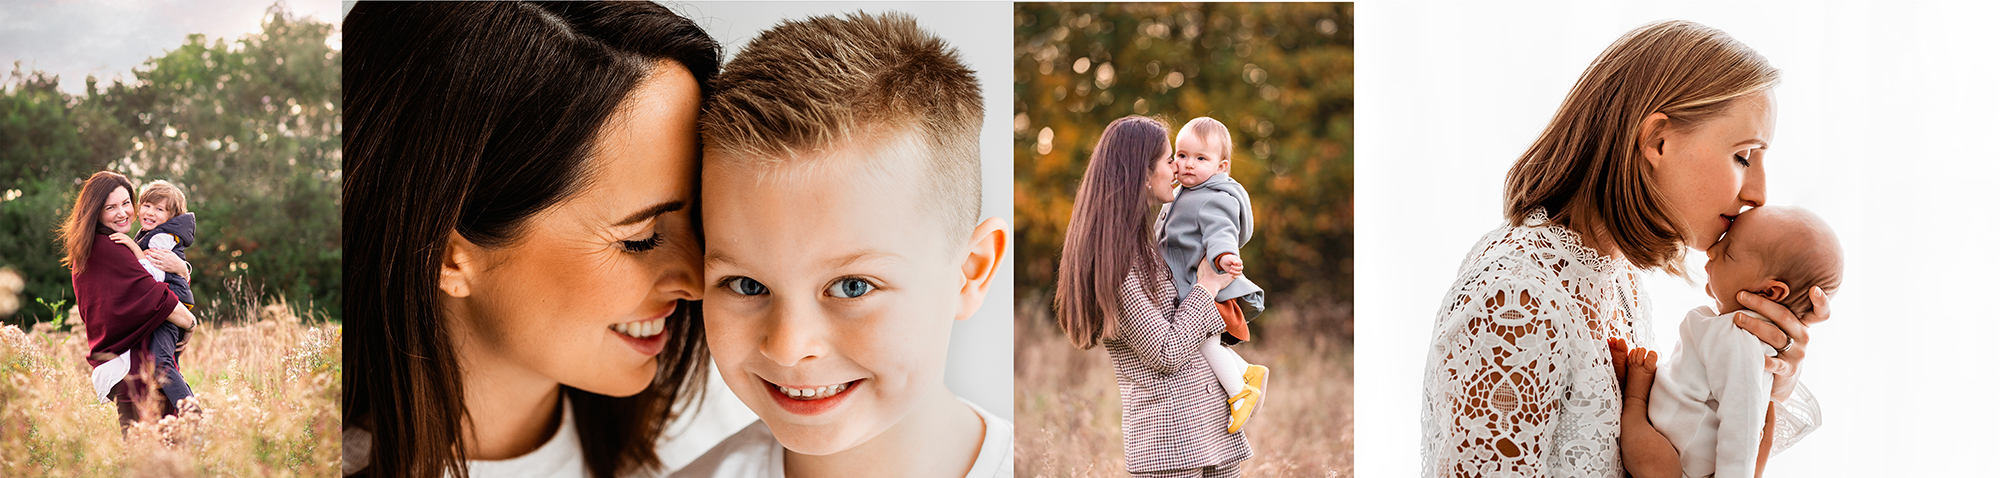 My Top Mothers Day Gifts - Barnsley family photographer